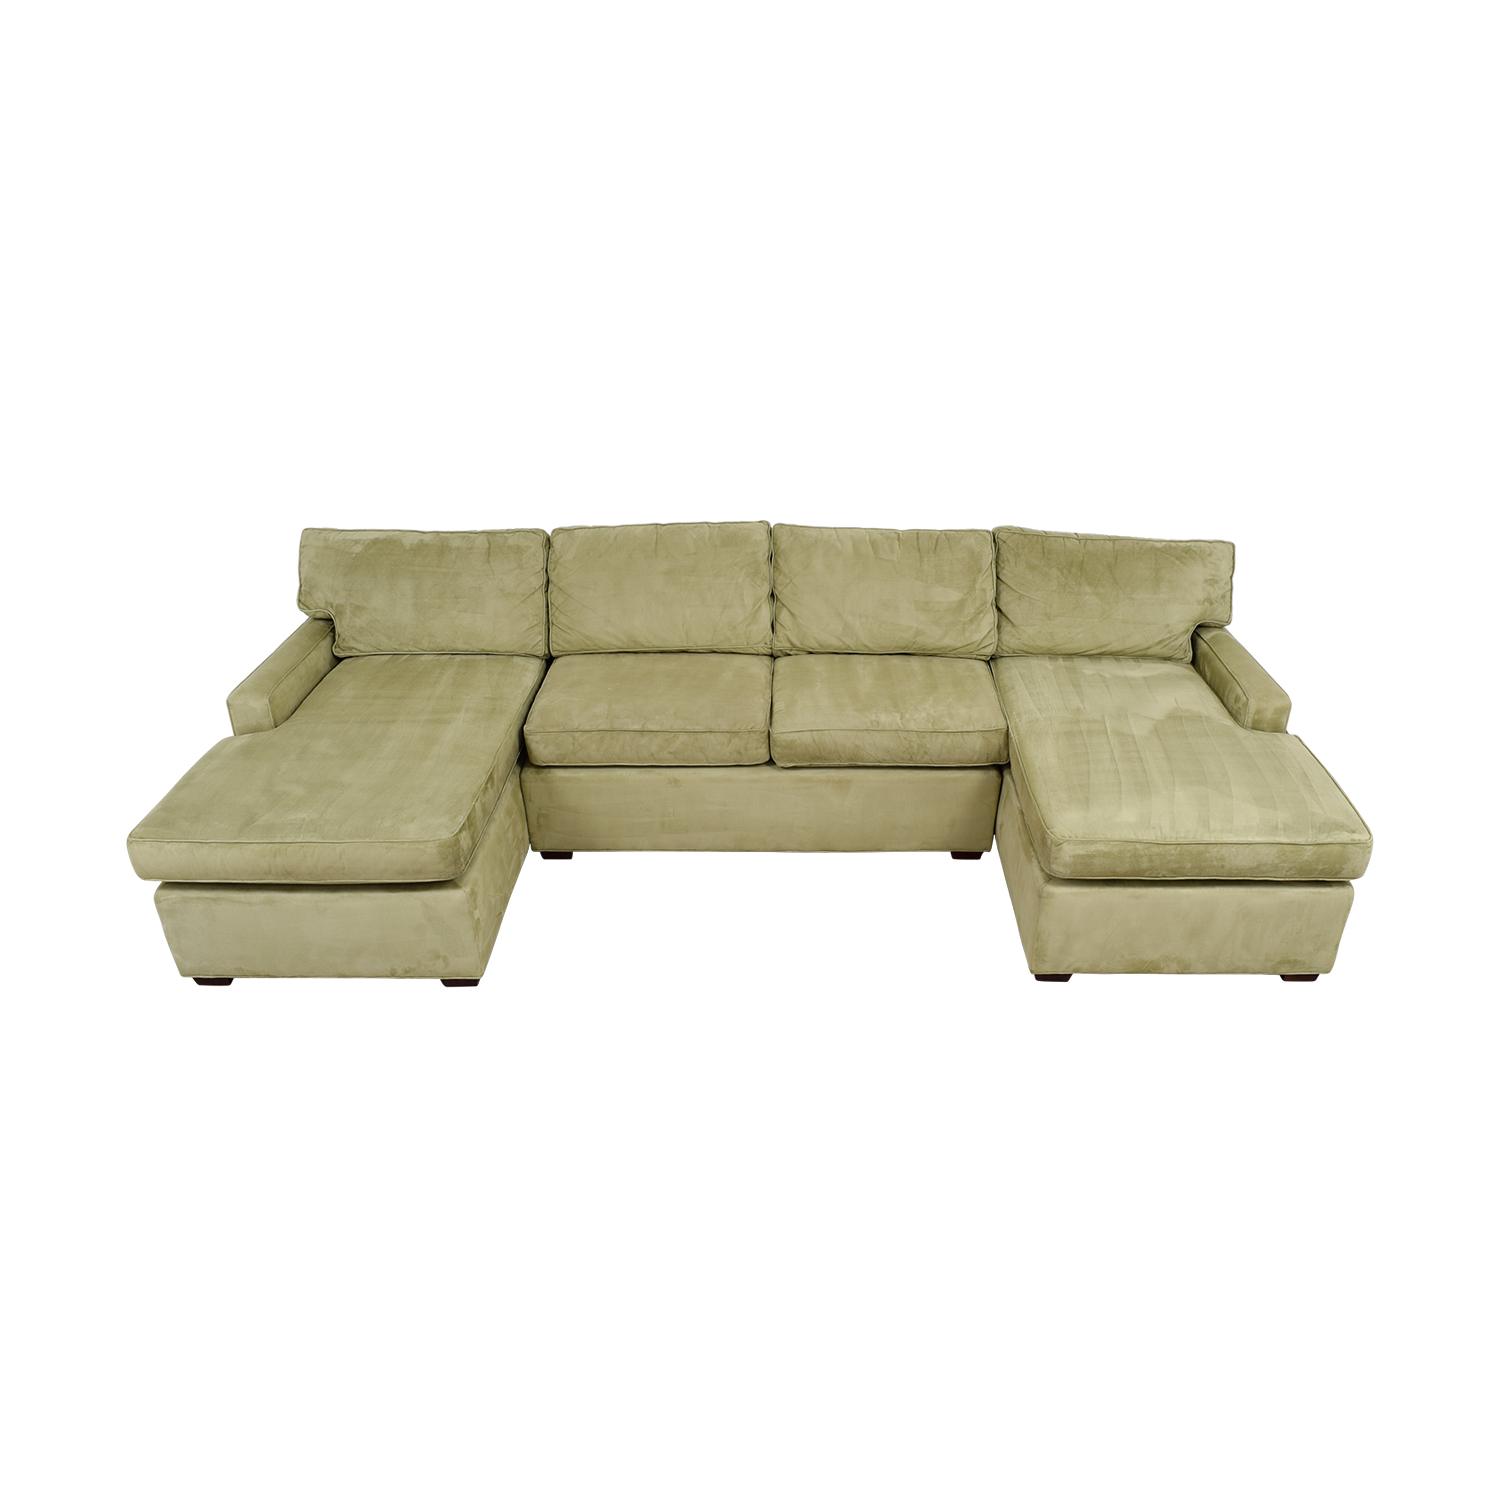 Pottery Barn Double Chaise Light Green Sectional / Sofas